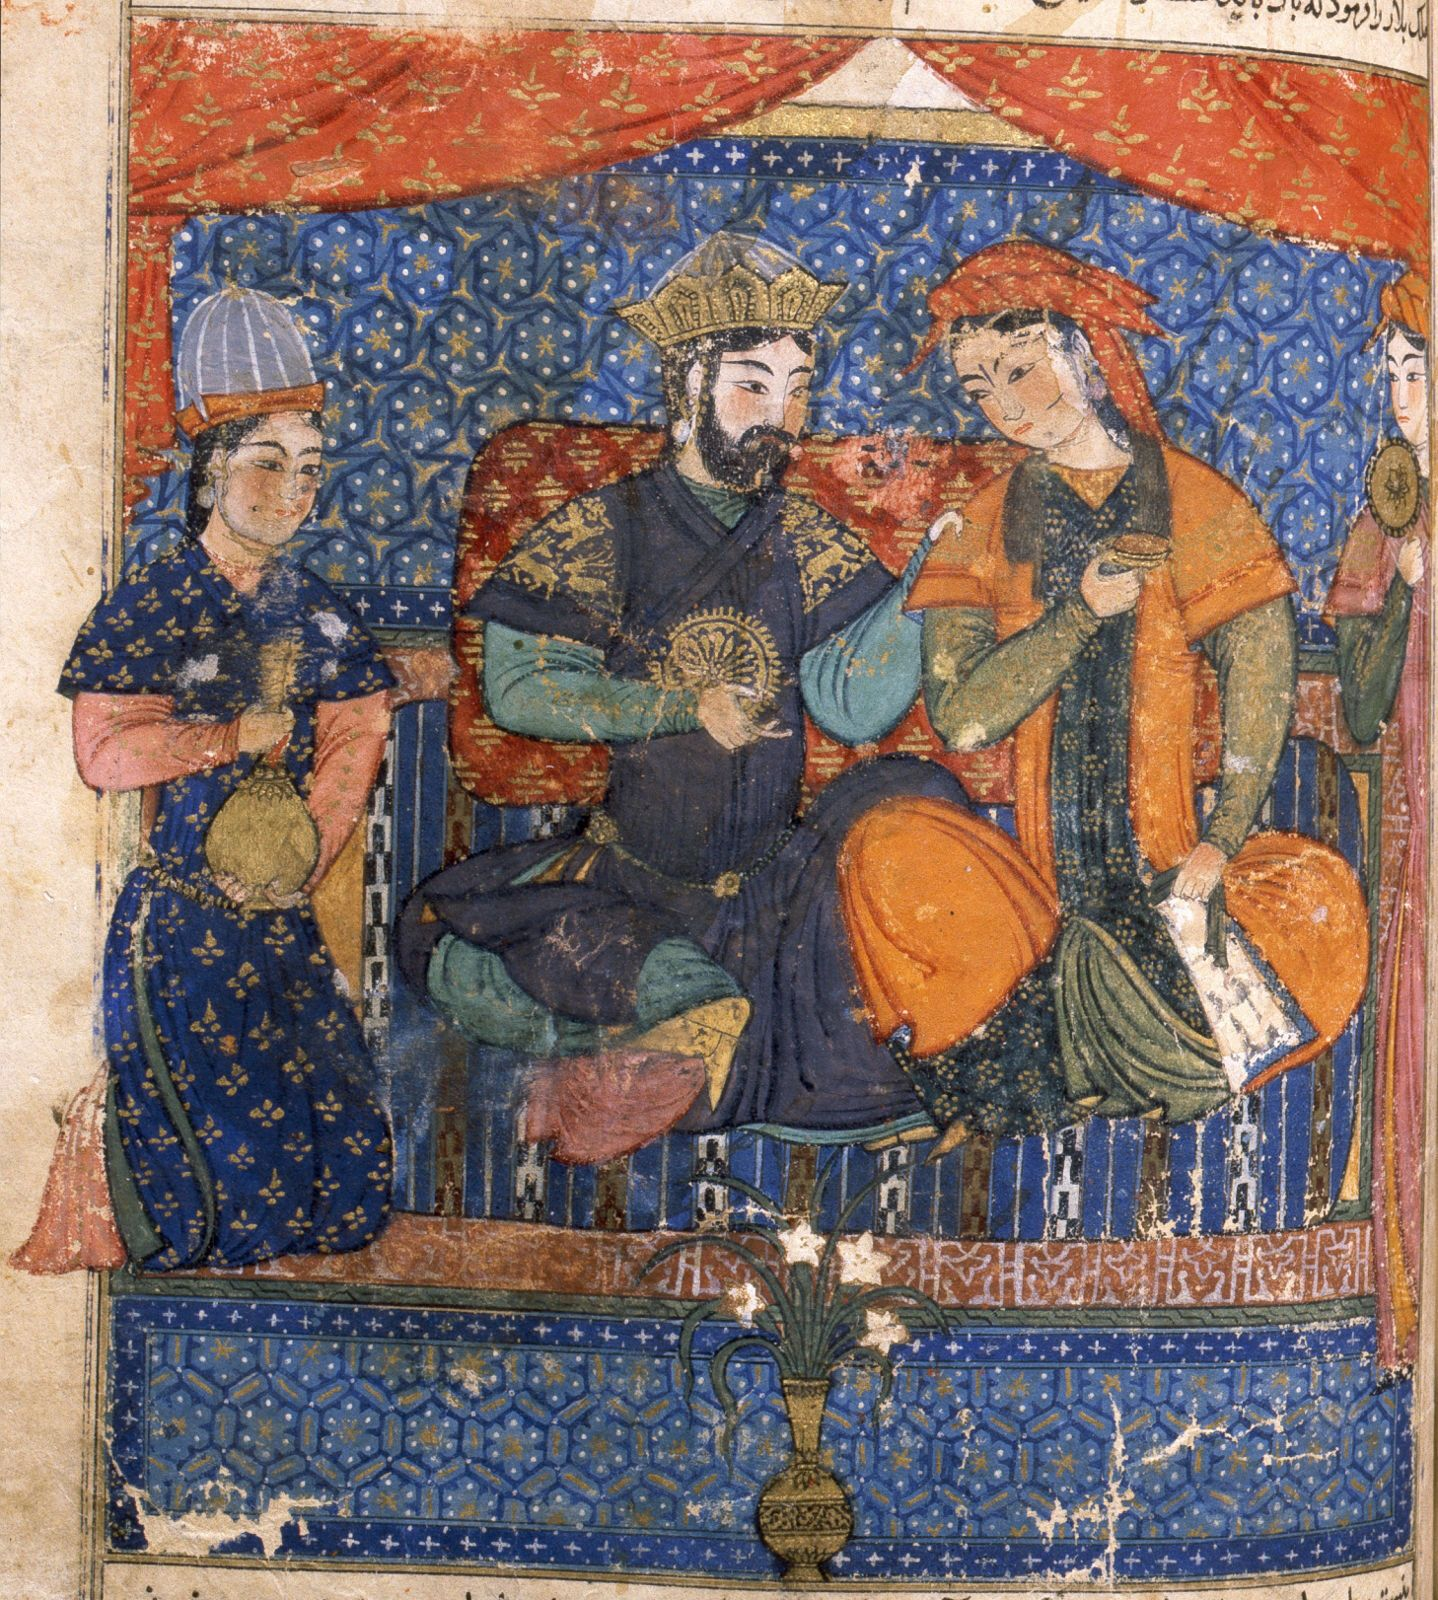 Manuscript illumination with depiction of a court scene Country of Origin: Egypt Culture: Islamic. Date/Period: Fatimid. Werner Forman Archive/ Islamic Museum, Cairo Fatimid Musicians, Dancers & Revelers